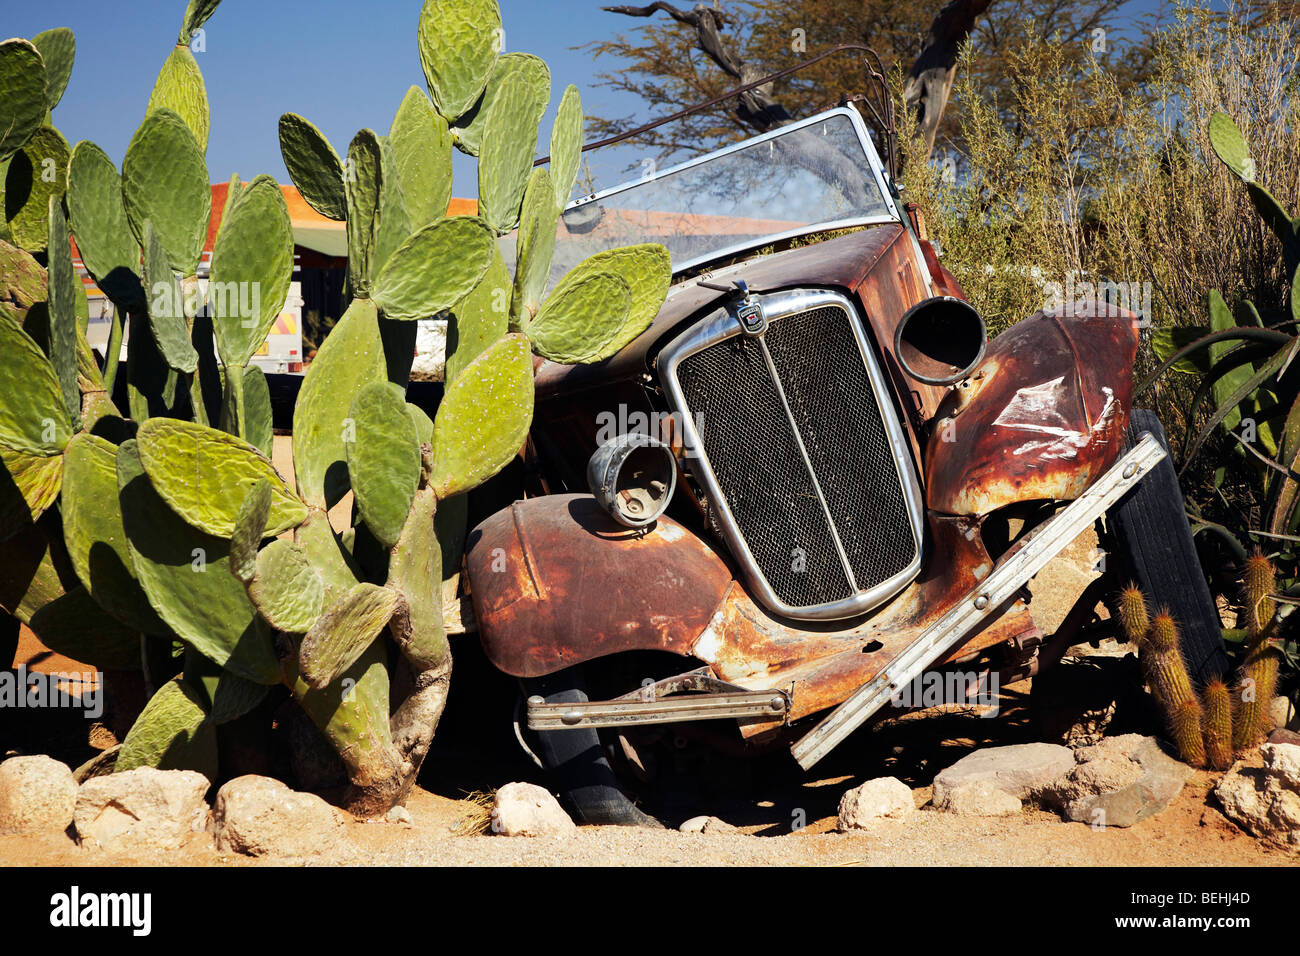 class car in cactus, Solitaire,  Namibia - Stock Image